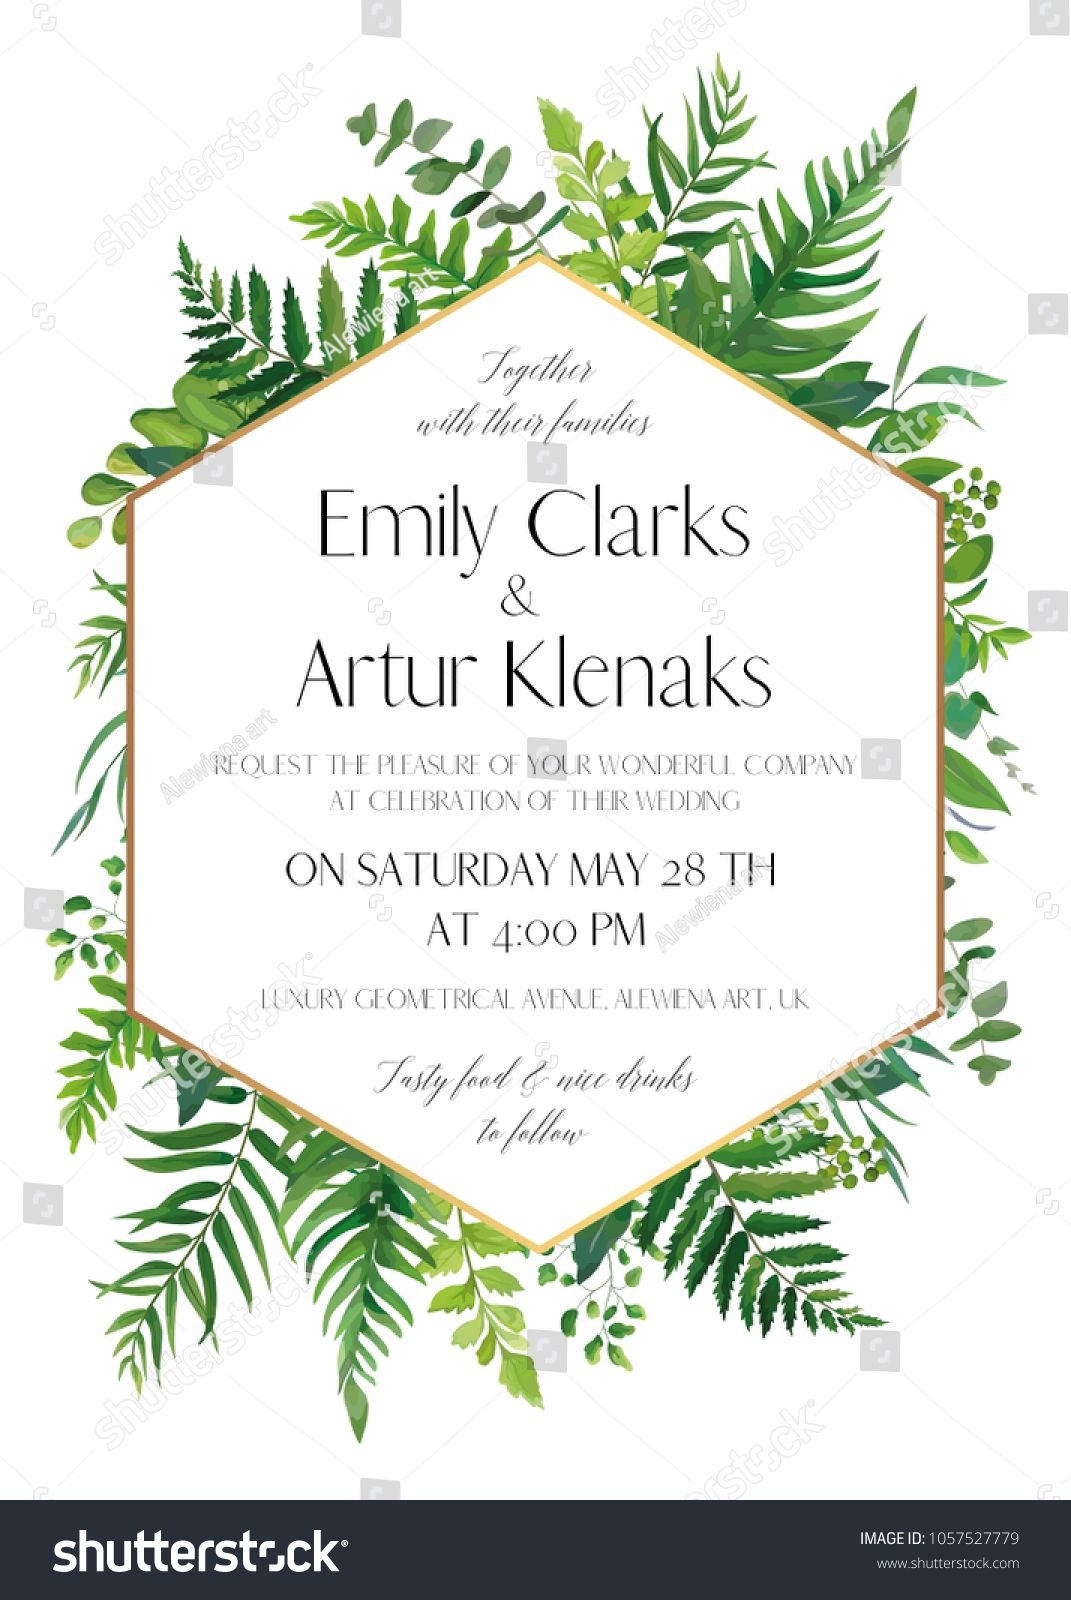 Wedding floral invitation invite card vector modern elegant design wedding floral invitation invite card vector modern elegant design with natural botanical green forest stopboris Images